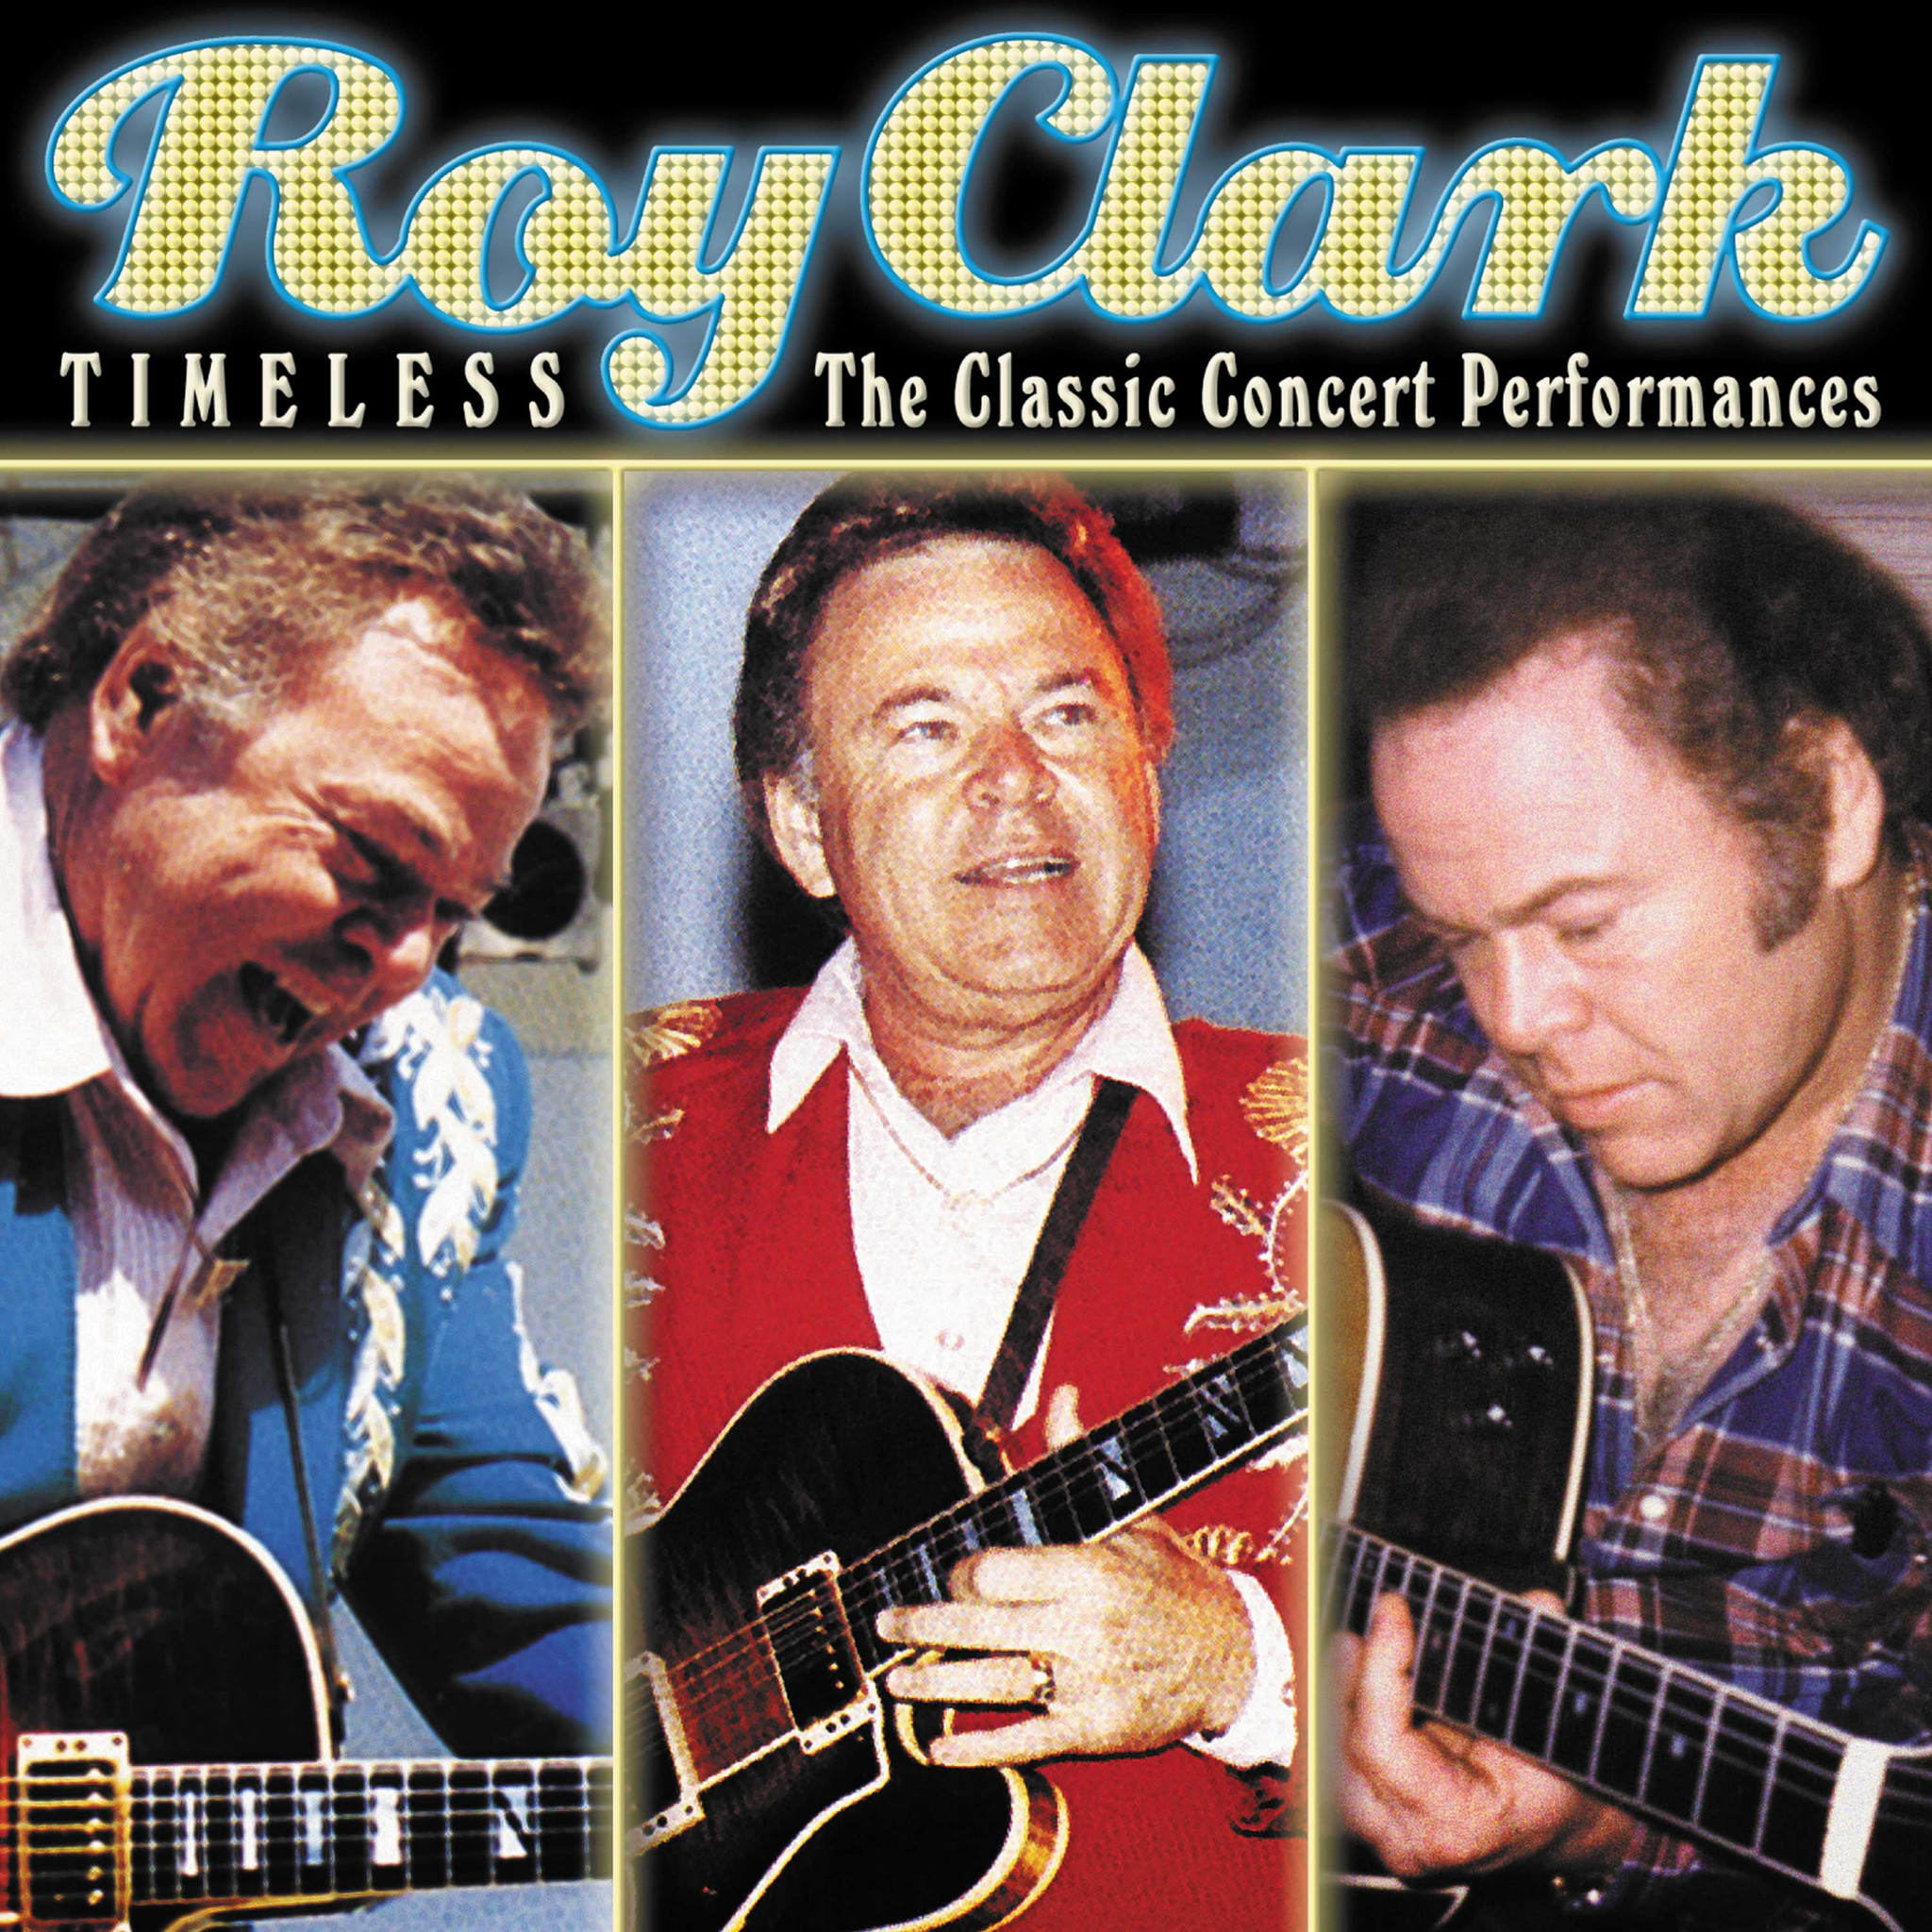 Timeless - the Classic Concert Performances - Roy Clark - Musik - COUNTRY - 0030206690927 - September 30, 2008